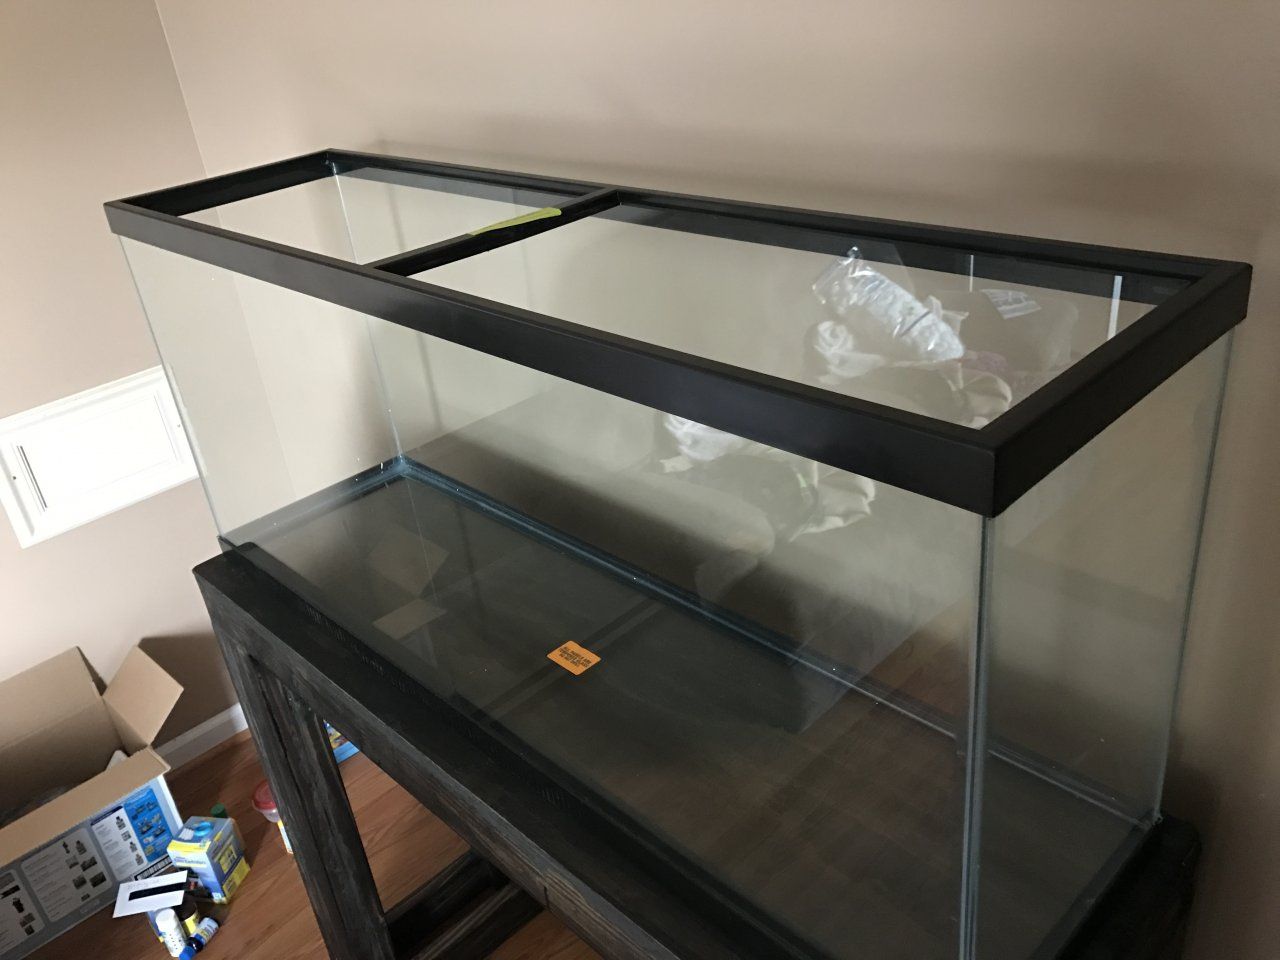 Best aquarium hood ideas i have a 55 gallon tank with two for 55 gallon fish tank led light hood